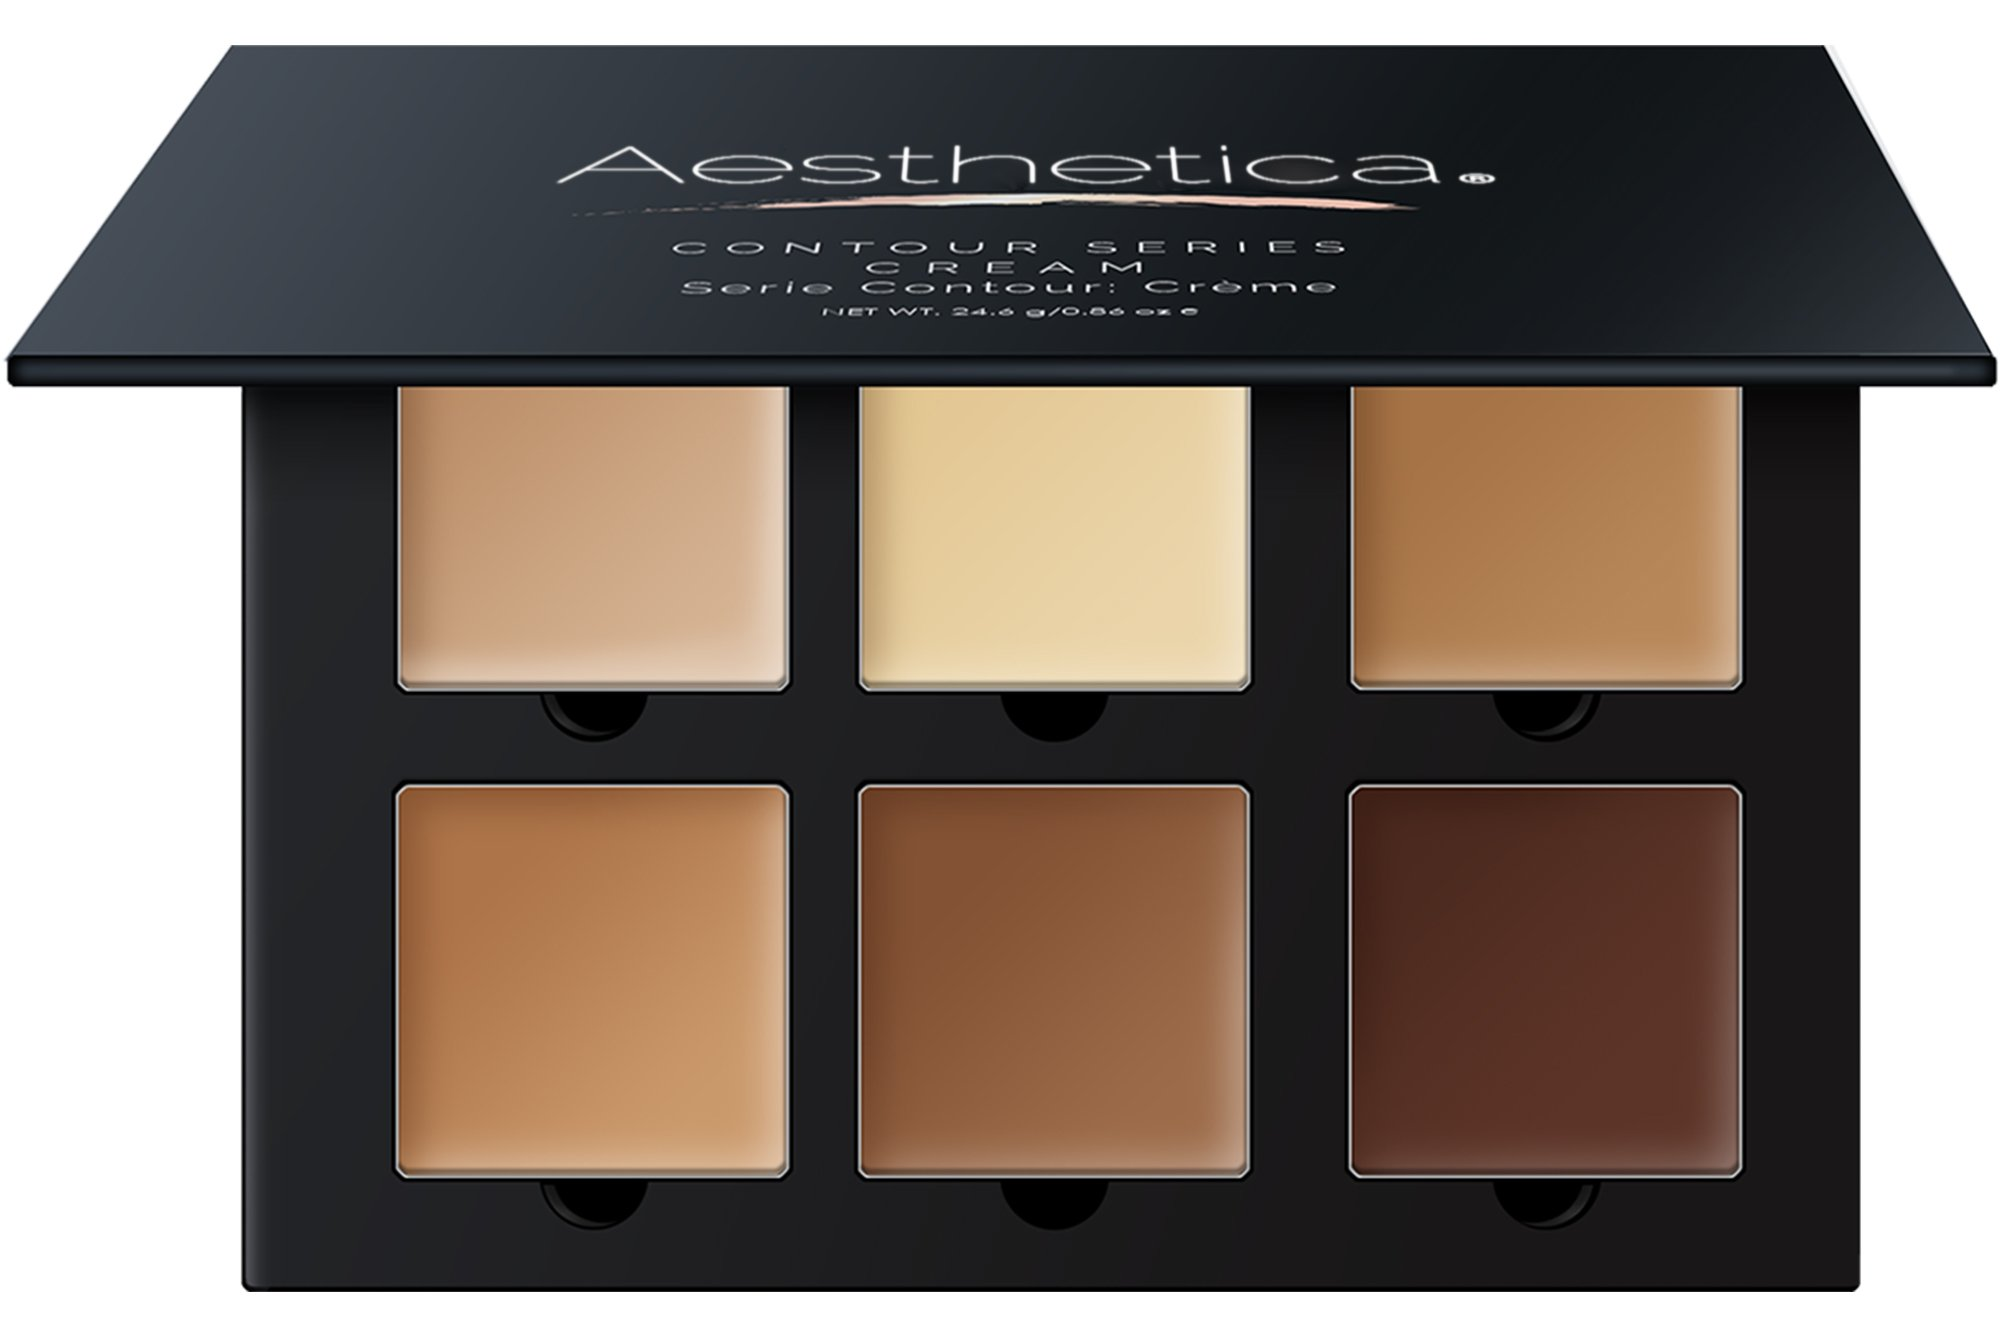 Aesthetica Cosmetics Cream Contour and Highlighting Makeup Kit - Contouring Foundation/Concealer Palette - Vegan, Cruelty Free & Hypoallergenic - Step-by-Step Instructions Included